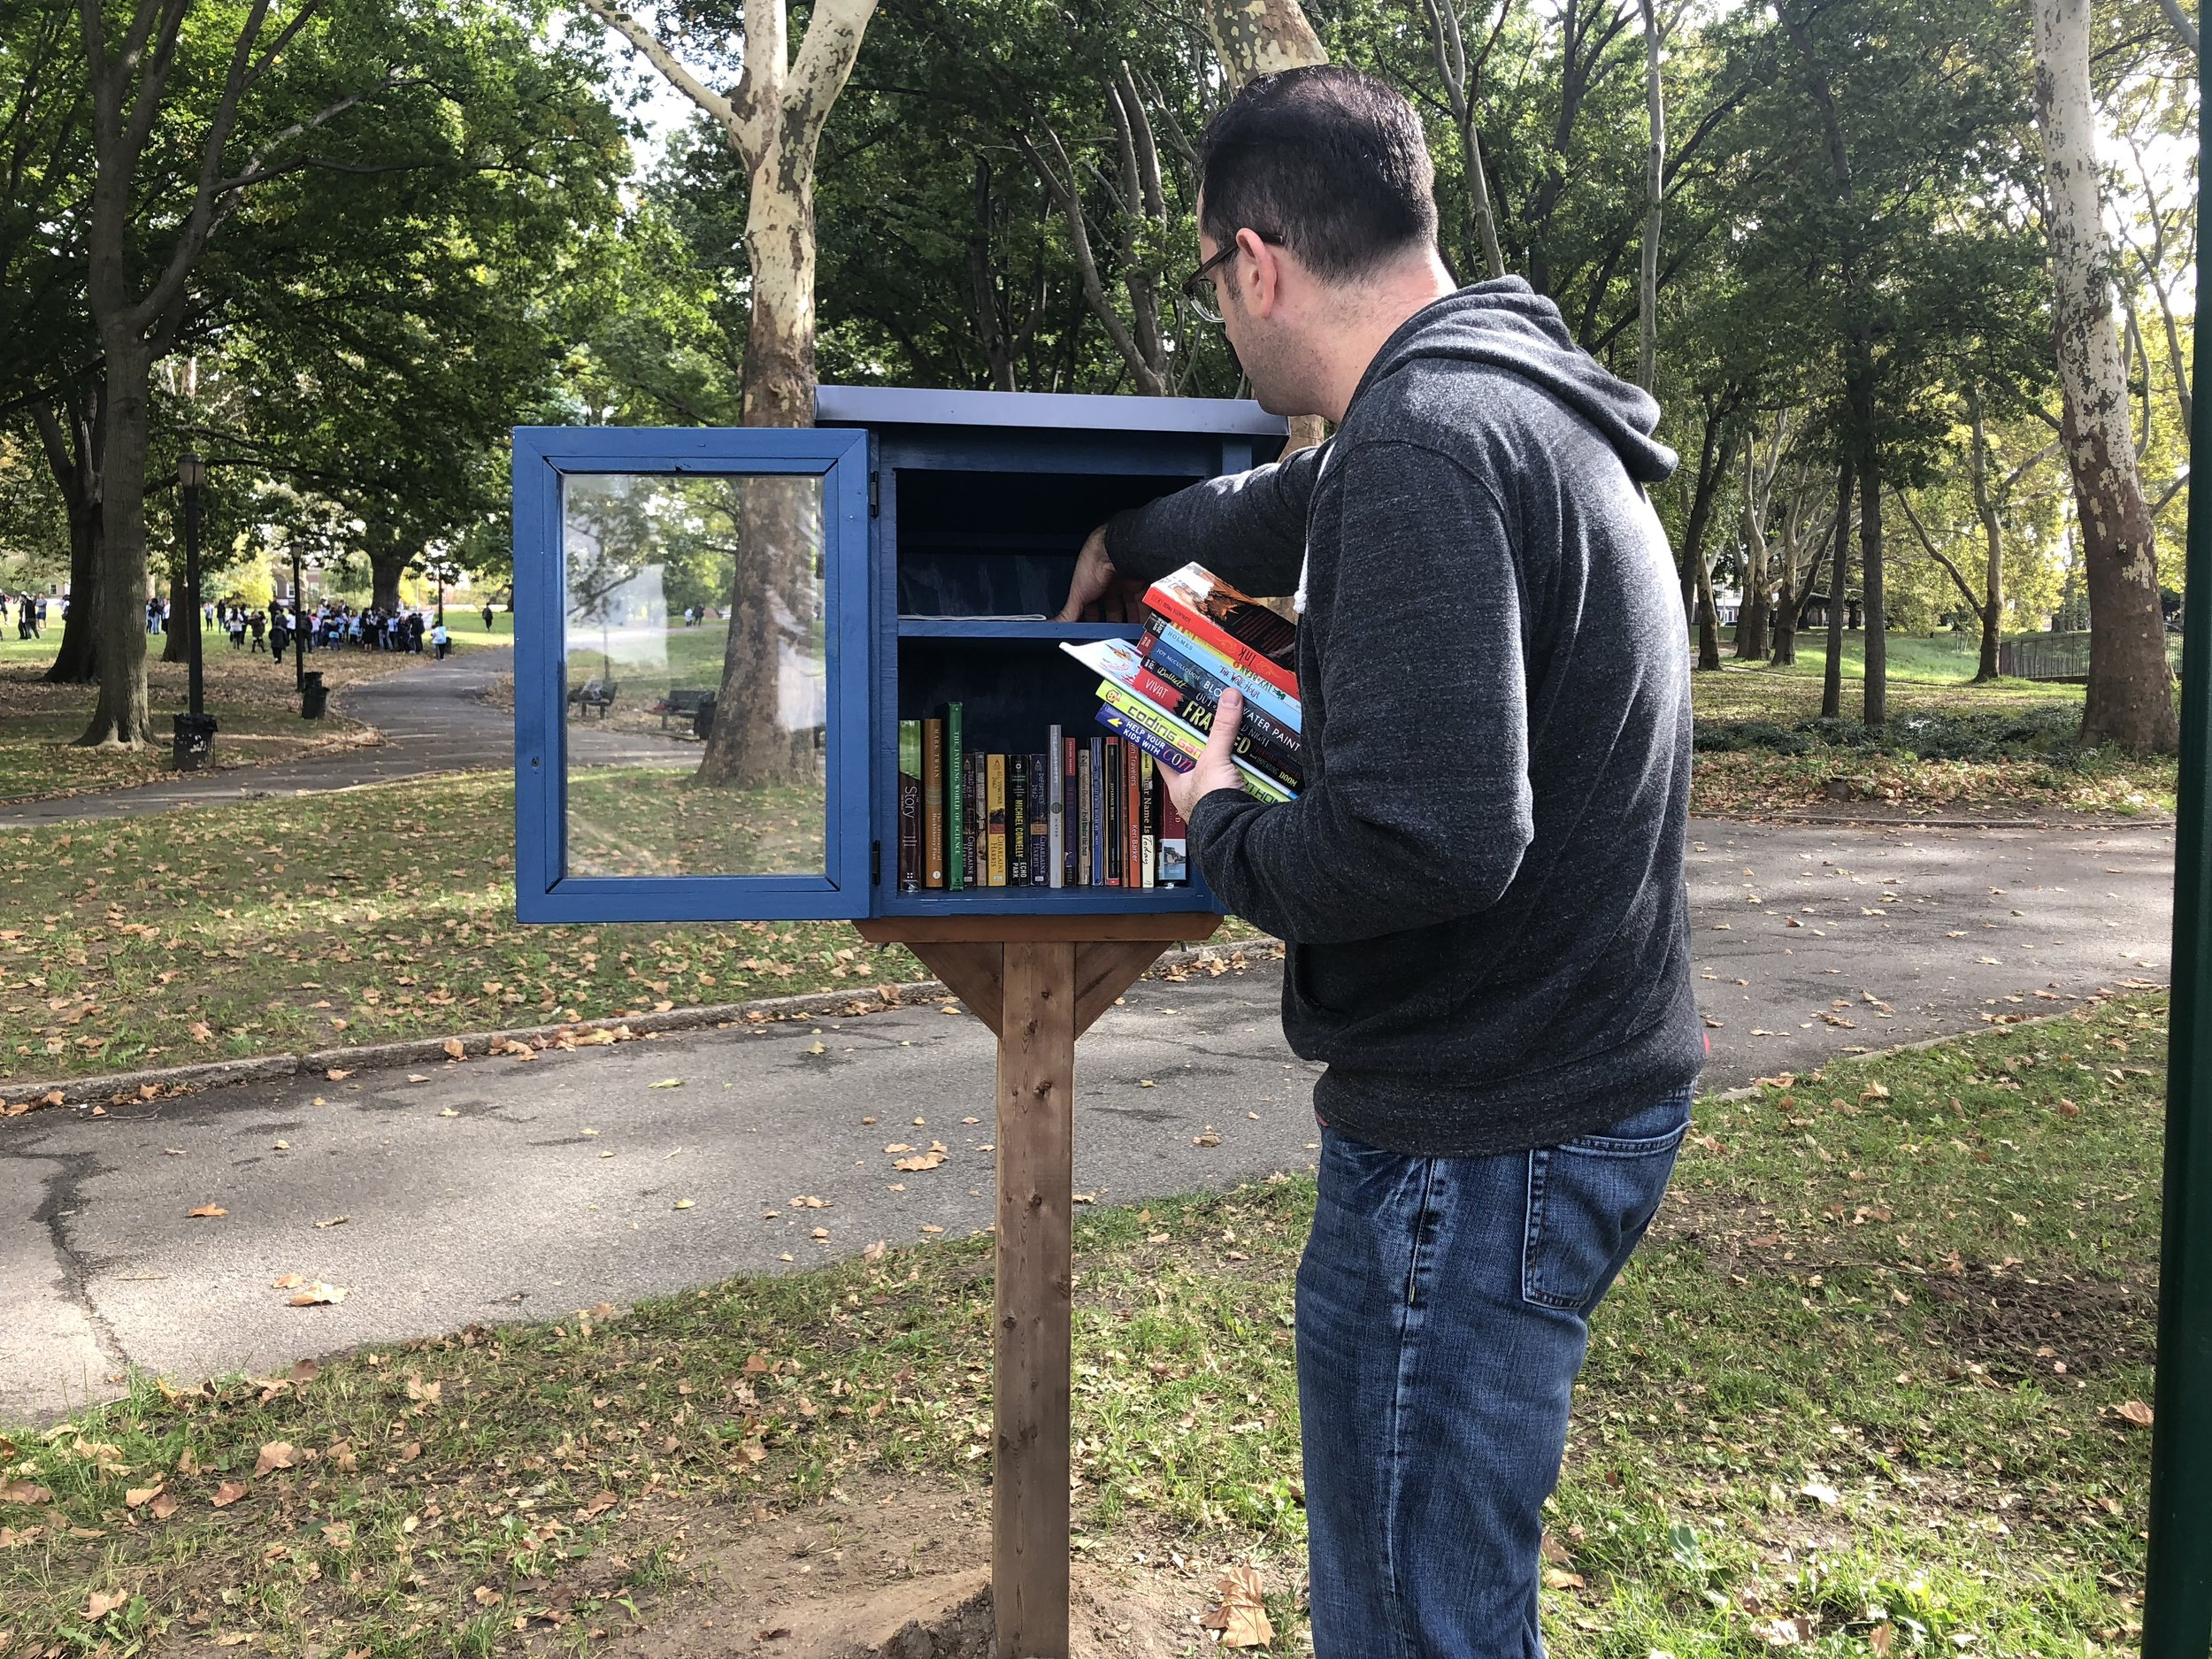 Astoria Park boasts a mini-library thanks to the Astoria Park Alliance.  Eagle  photos by Sarah Burchell.